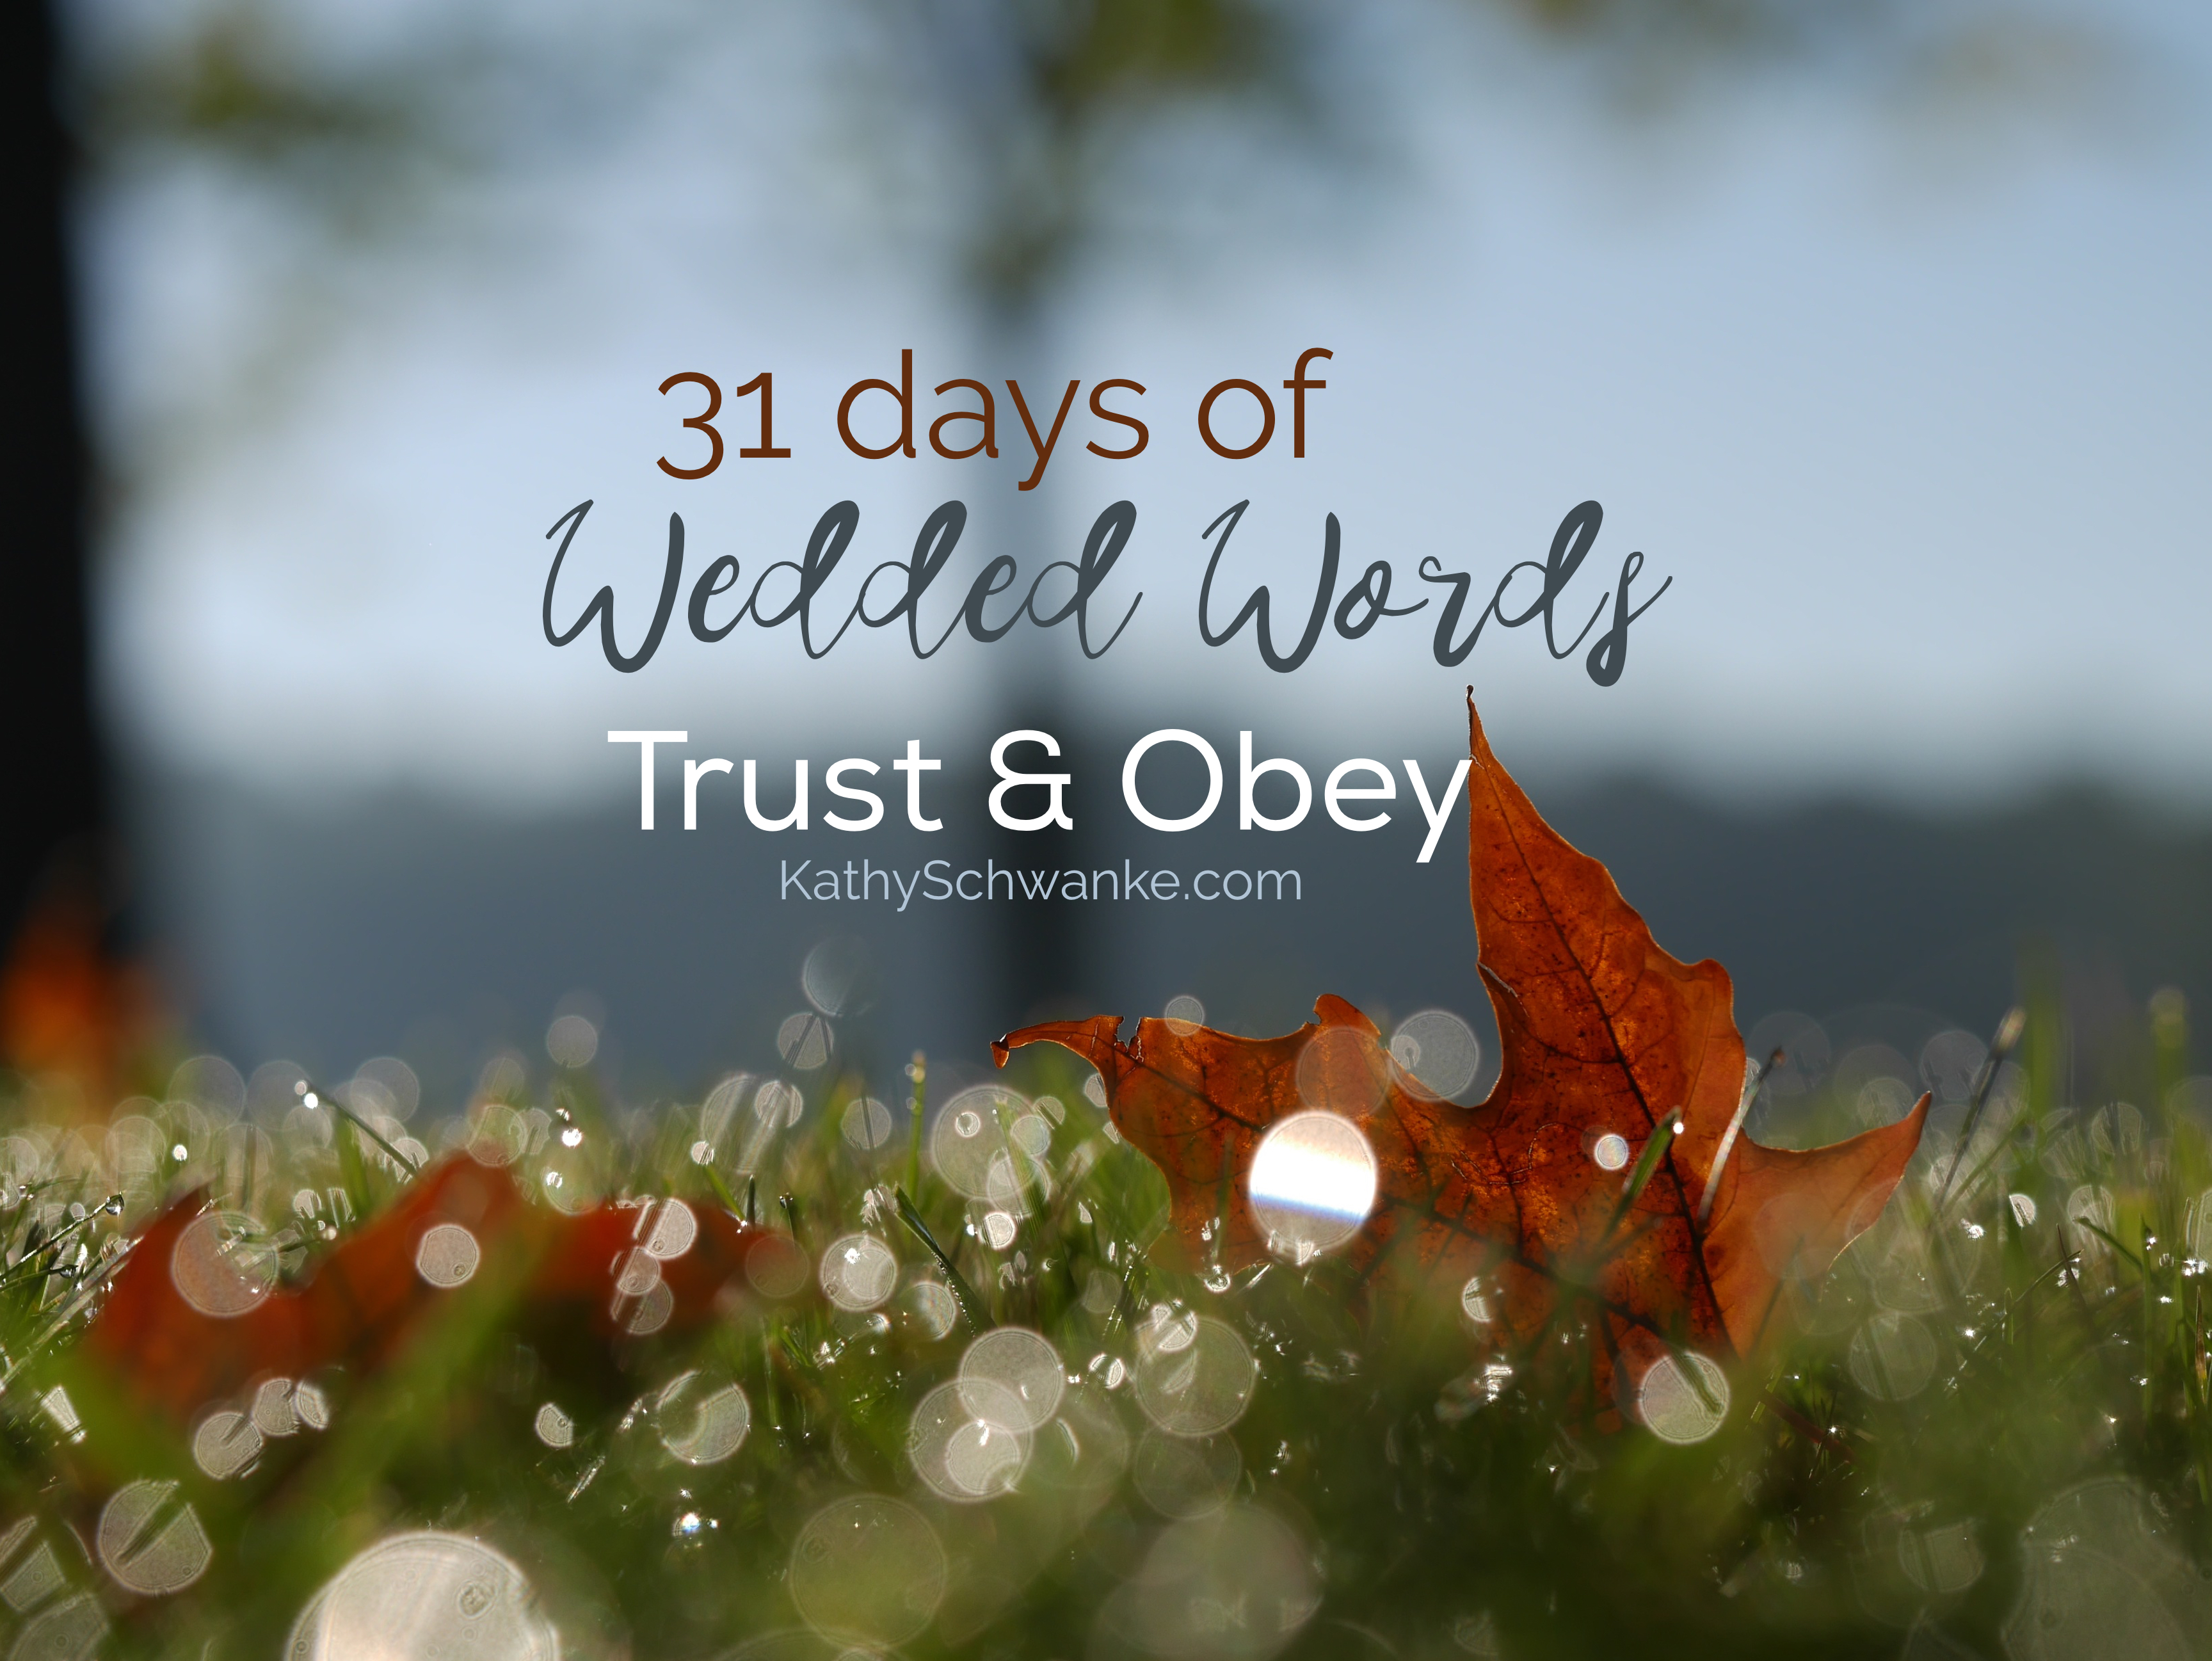 Trust & Obey: 31 Days of Wedded Words & A Giveaway